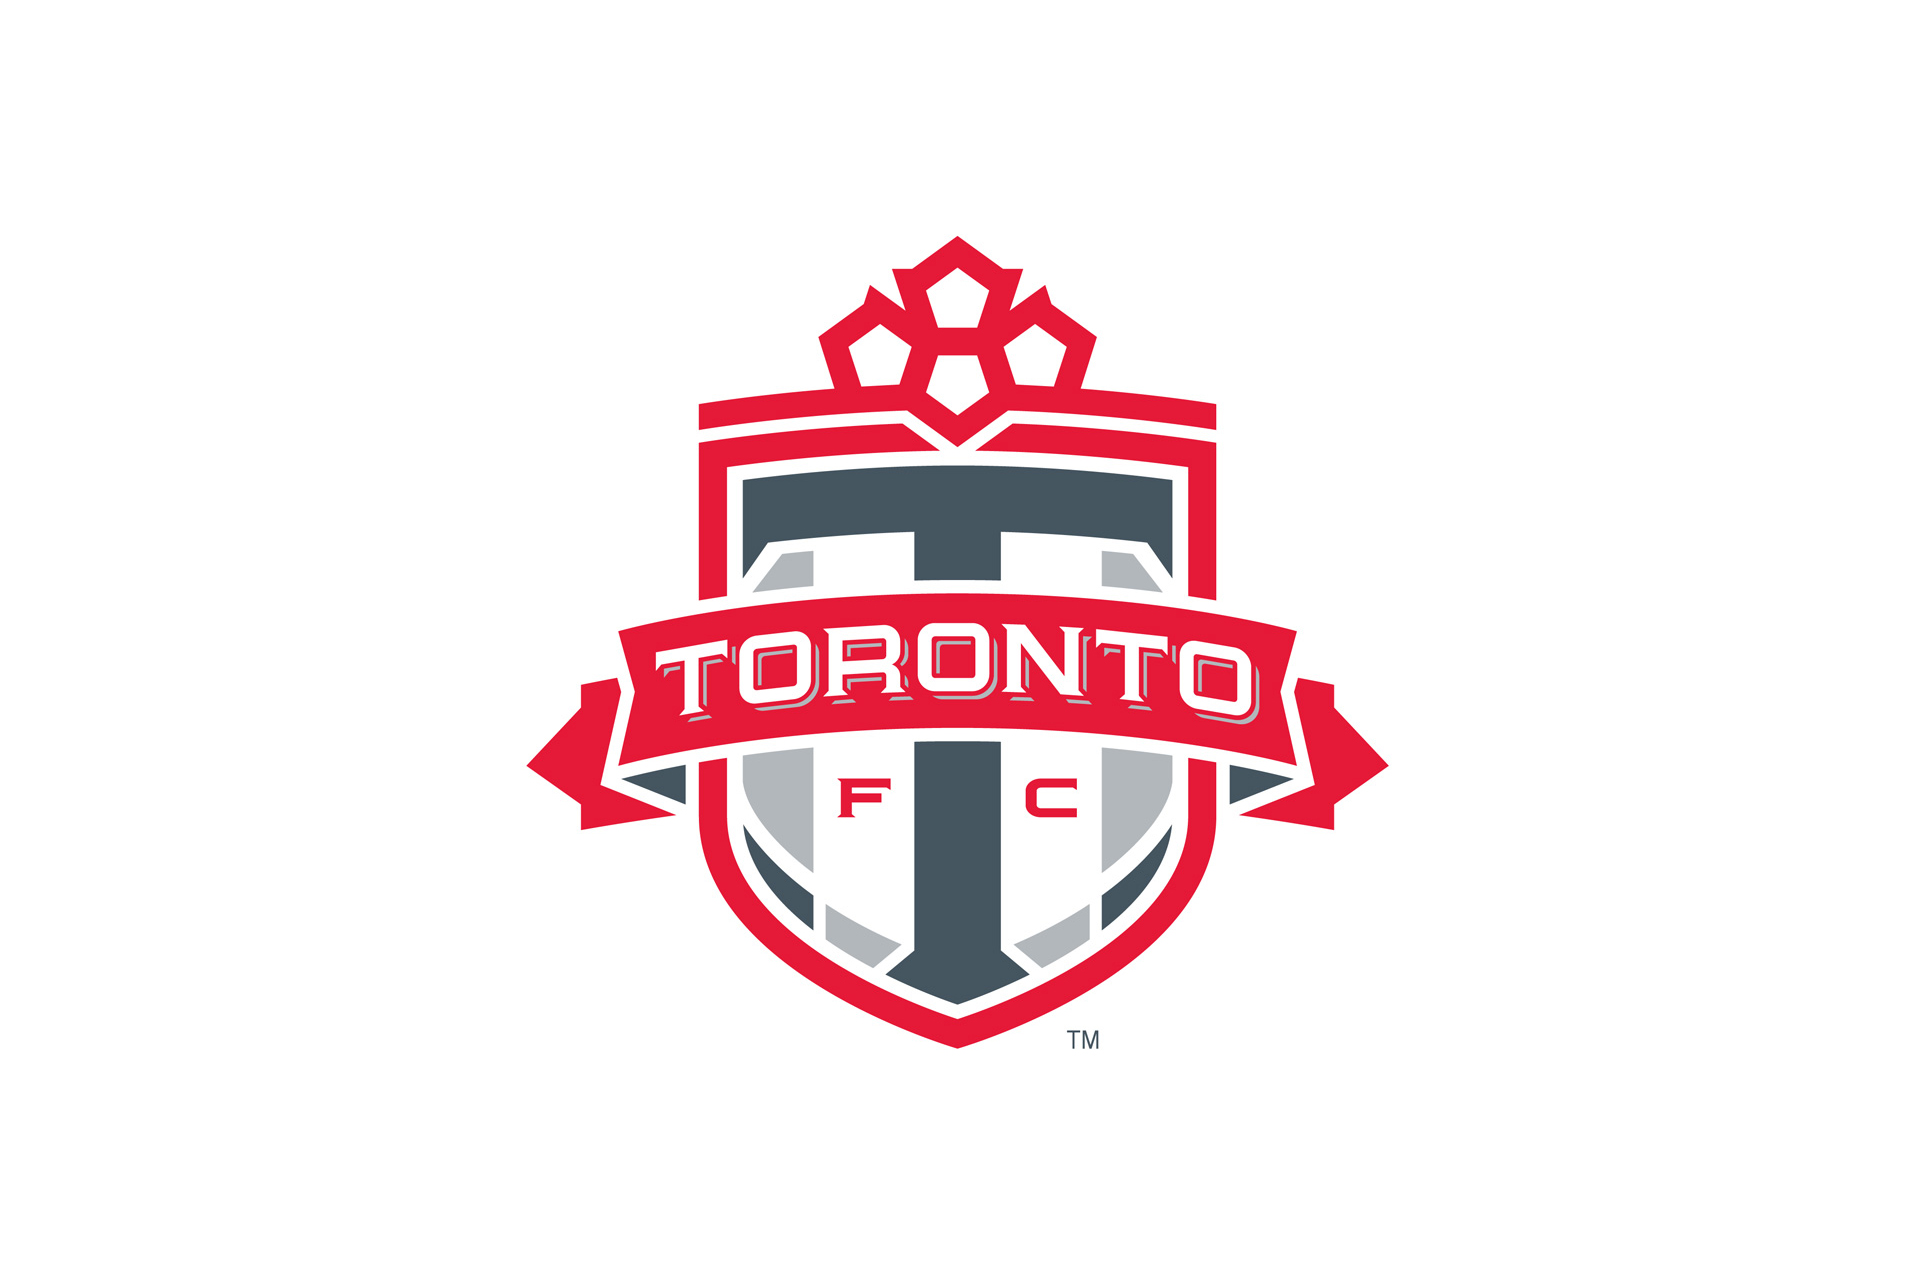 toronto football club essay These sample essay outlines will help your students organize and format their ideas before writing an essay or research paper for language arts, social studies, and.